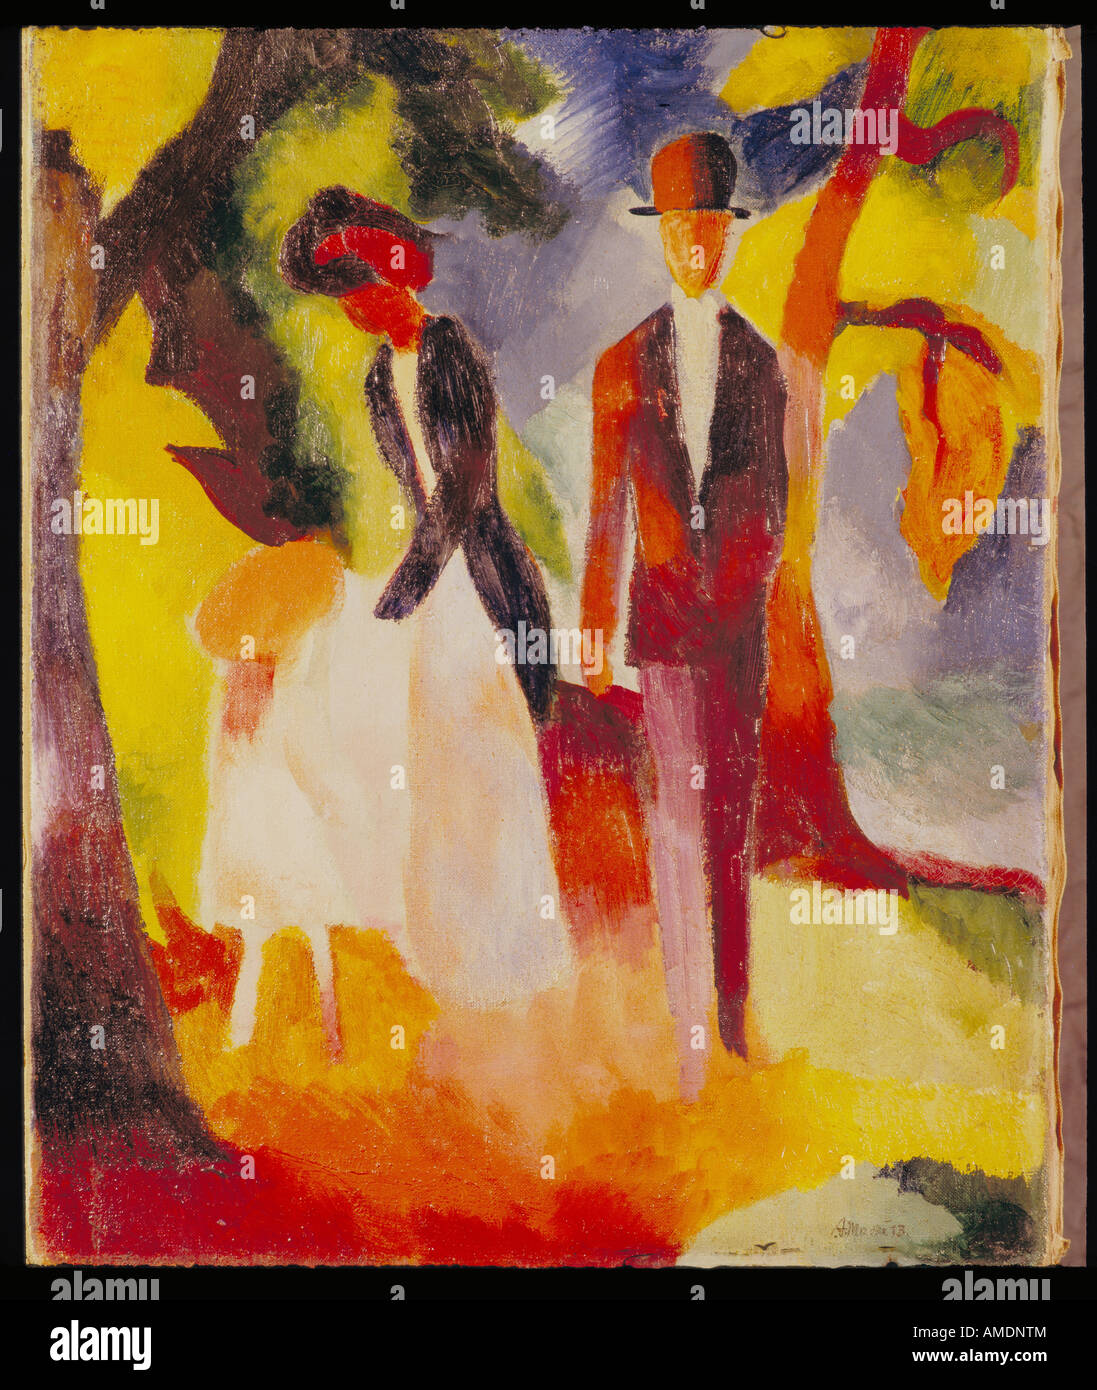 fine arts, Macke, August, (3.1.1887 - 26.9.1914), painting, 'Leute am blauen See', 'People at the blue - Stock Image